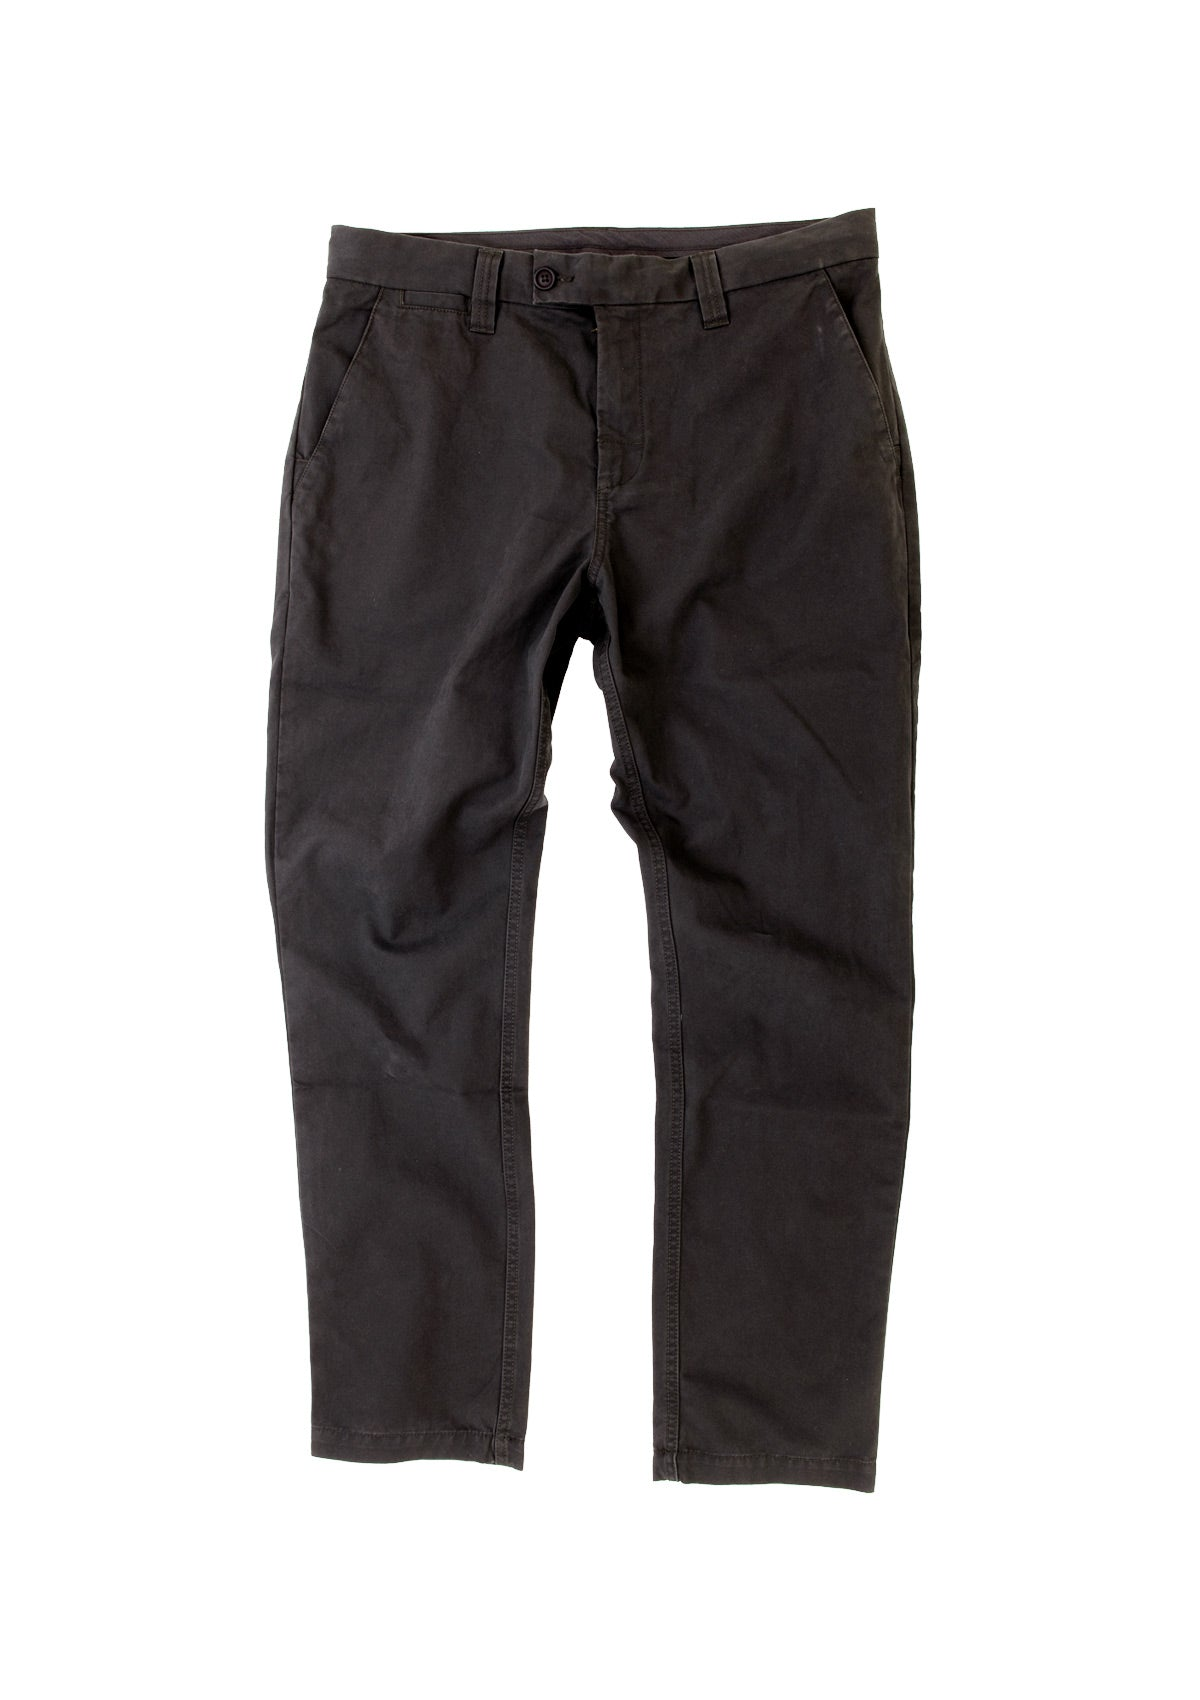 needessentials organic cotton pant black chino